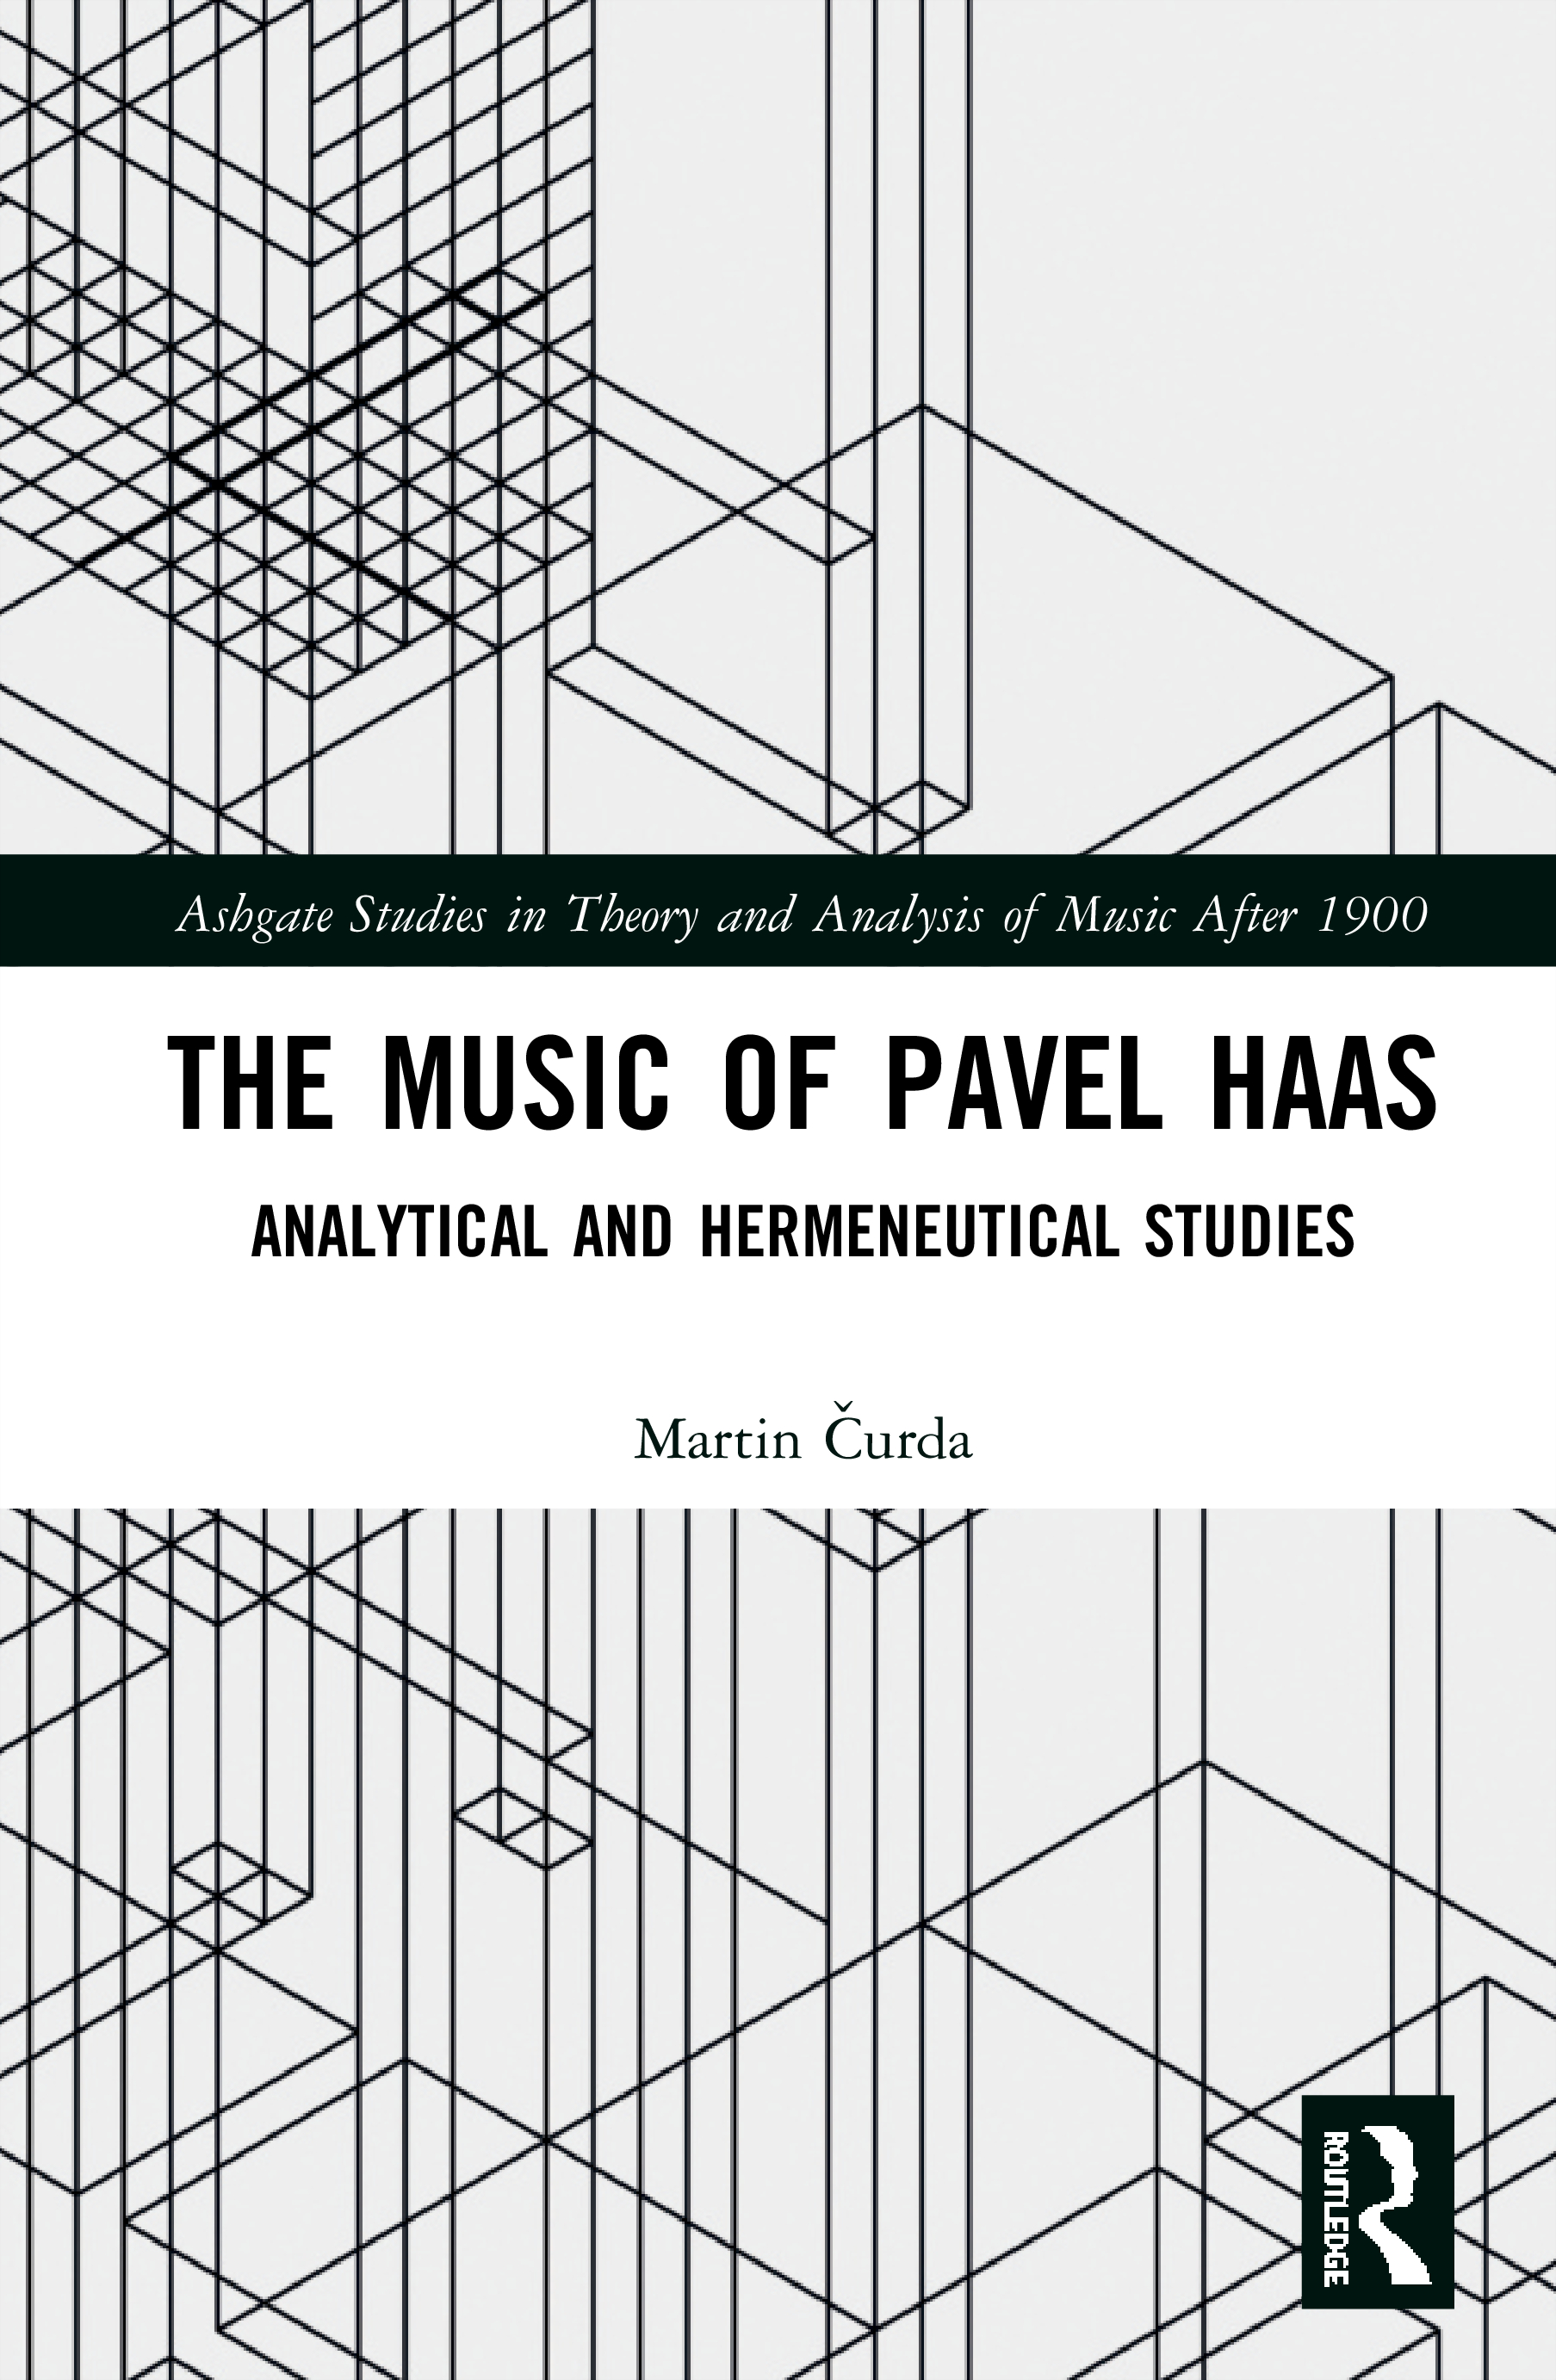 The Music of Pavel Haas: Analytical and Hermeneutical Studies, 1st Edition (Hardback) book cover